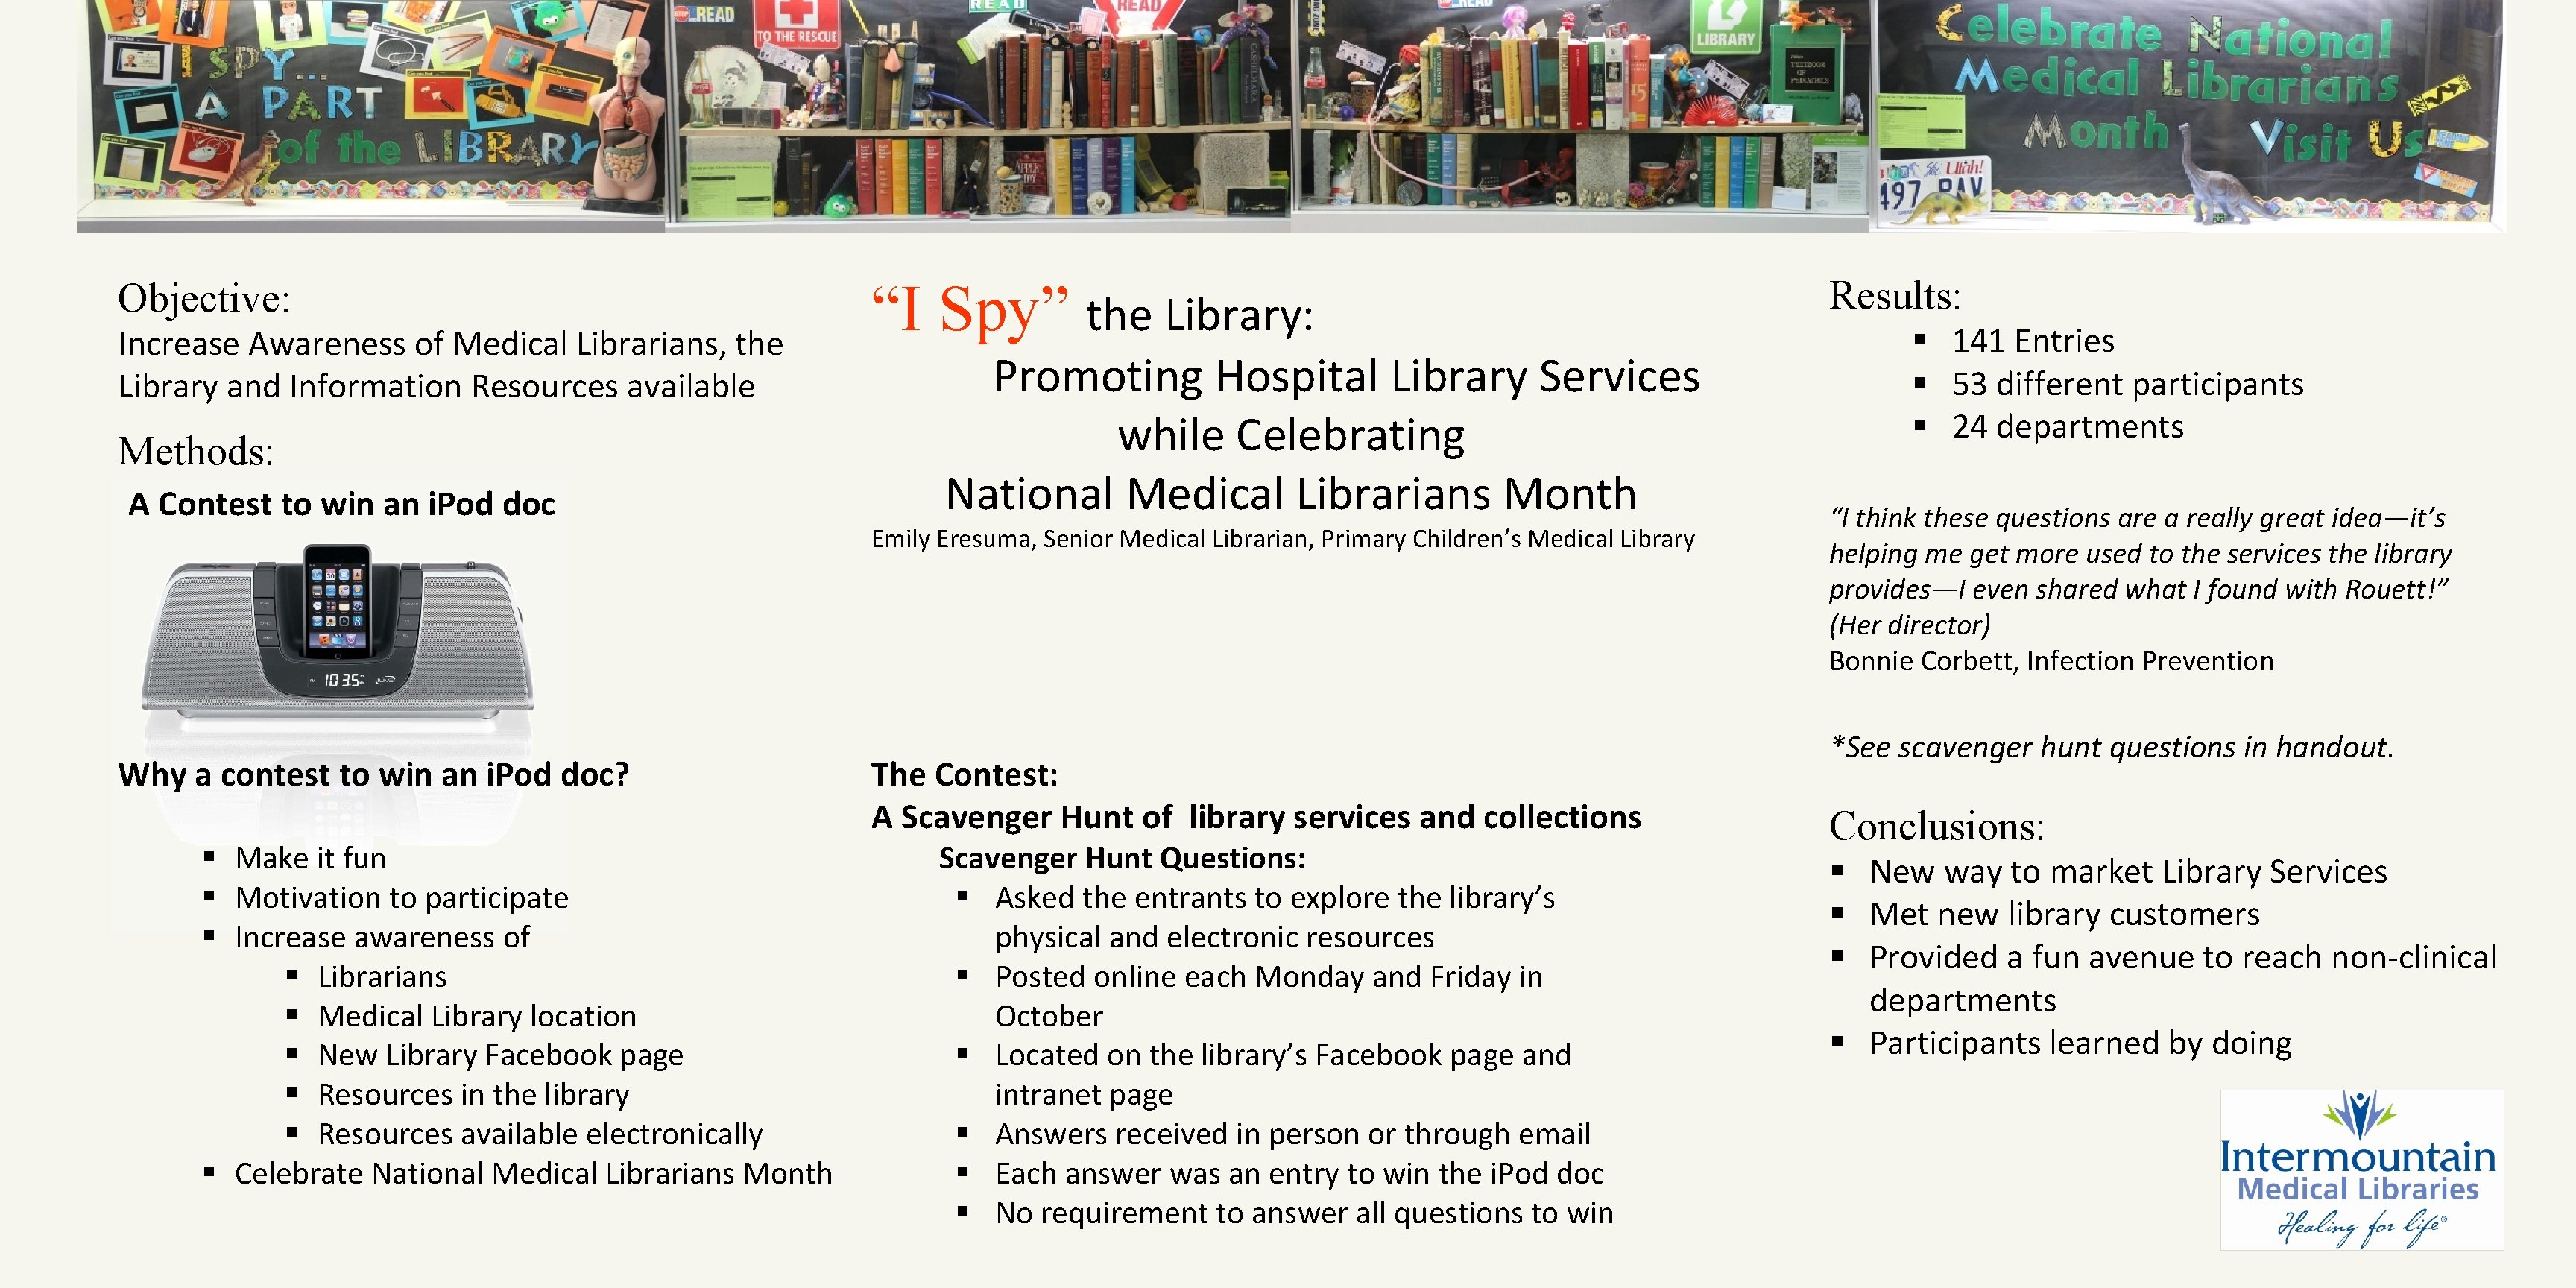 Objective: Increase Awareness of Medical Librarians, the Library and Information Resources available Methods: A